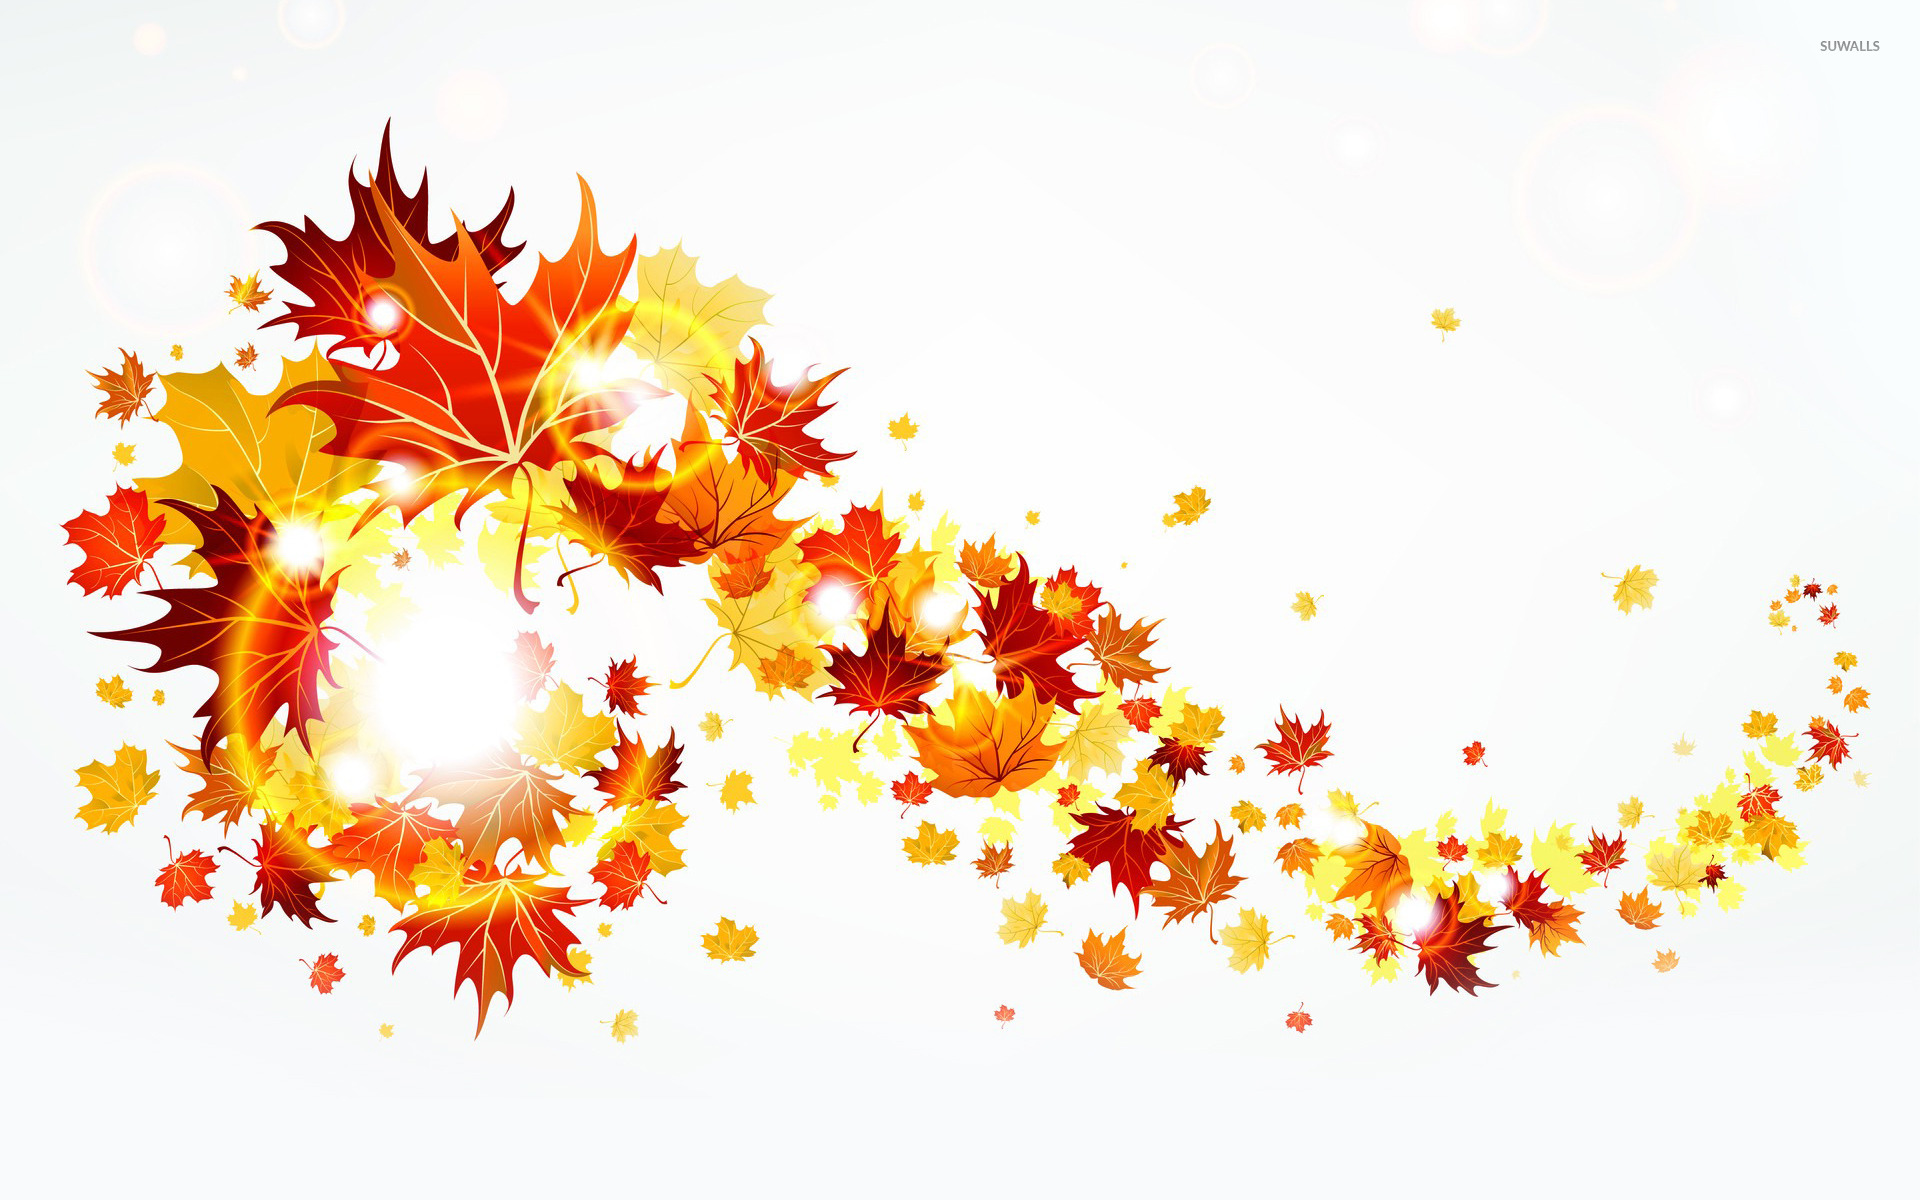 Falling Snow Wallpaper Note 3 Free Photo Fall Leaves Red Yellow Water Free